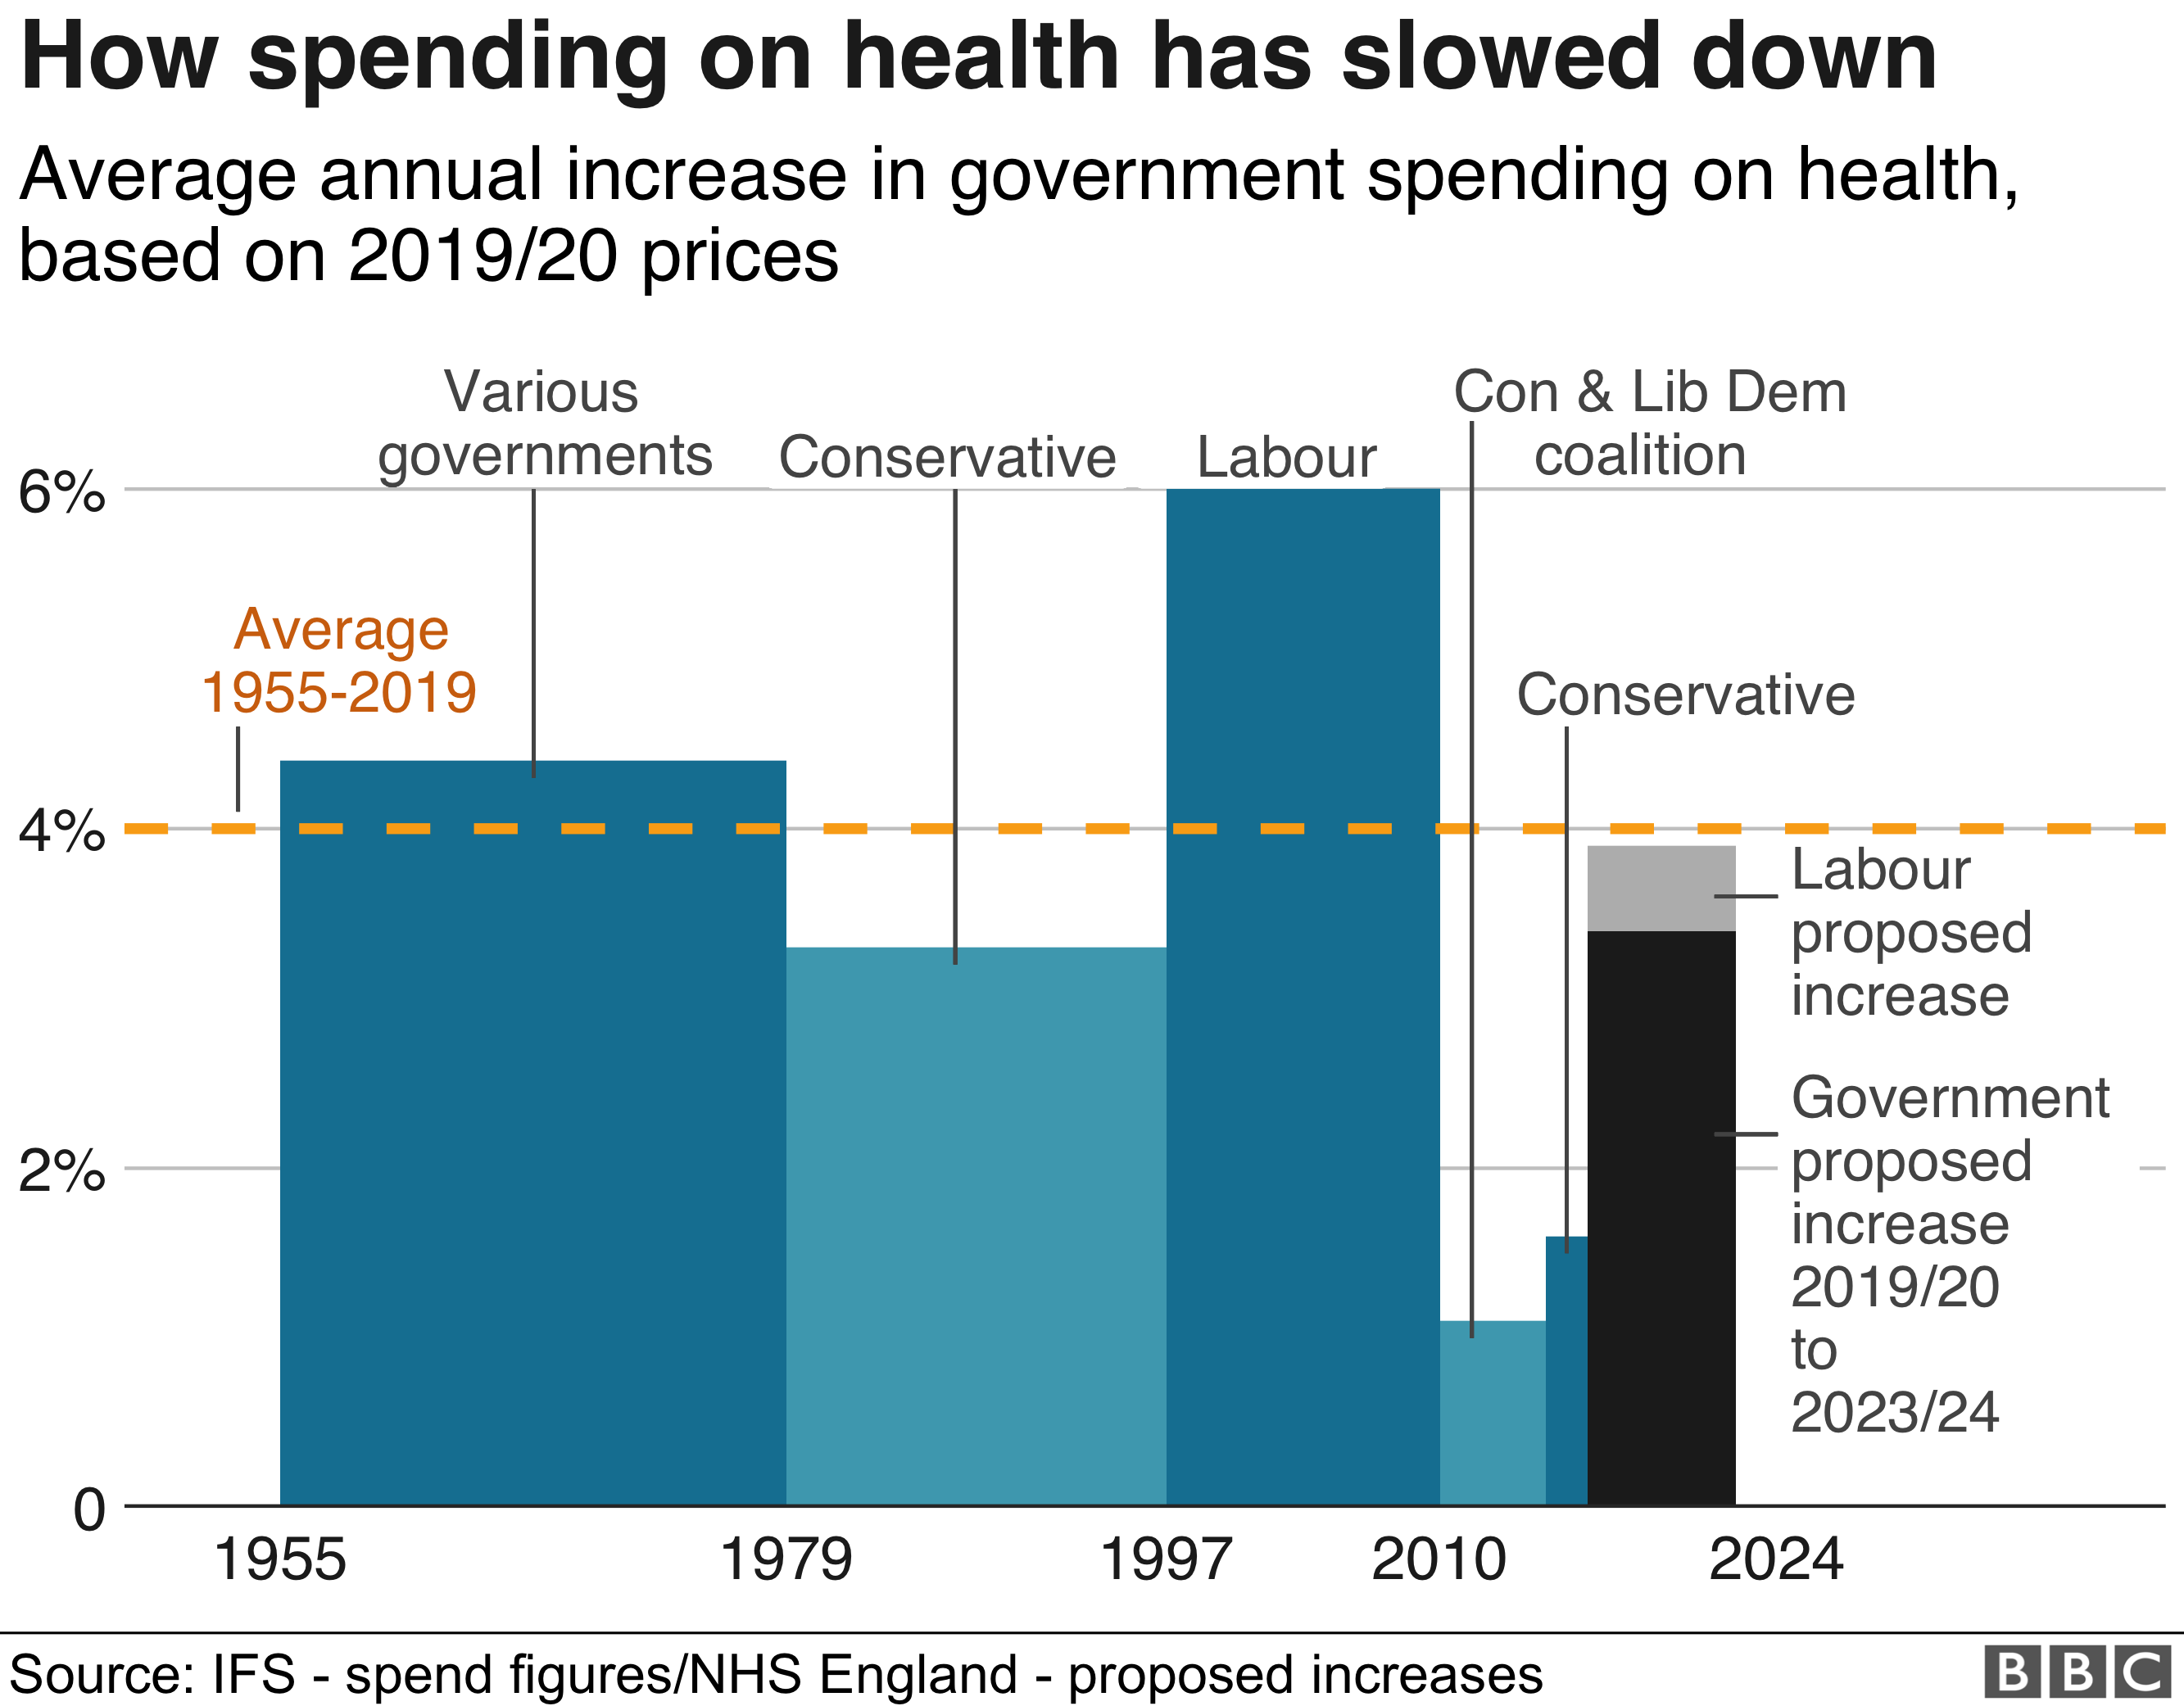 Chart showing how spending on health has slowed down